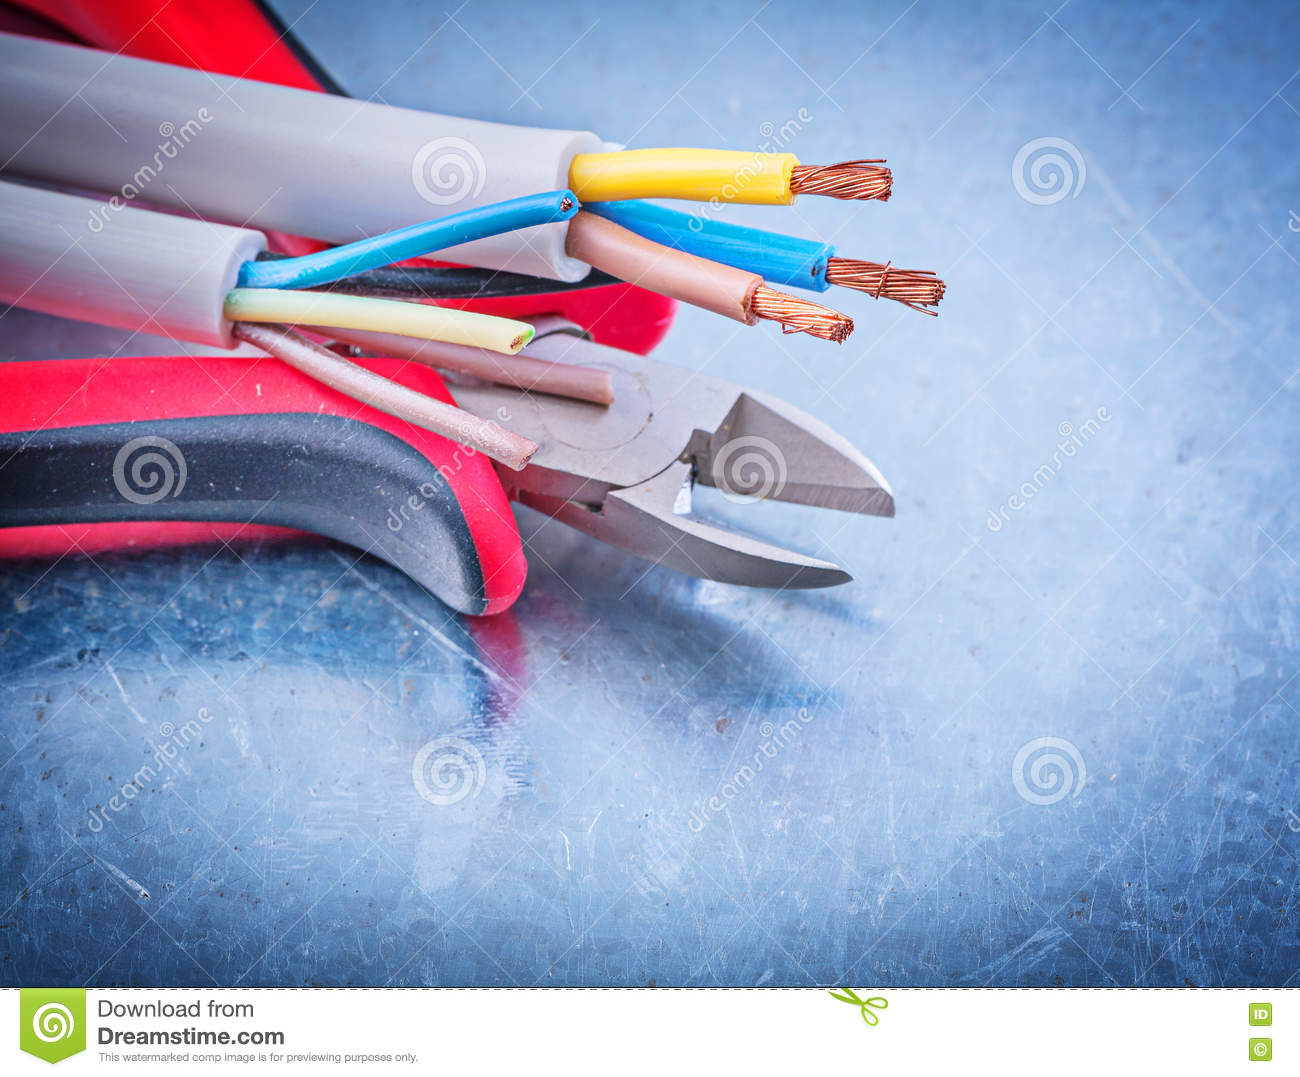 Electrical cables wires cutting pliers on metallic background co